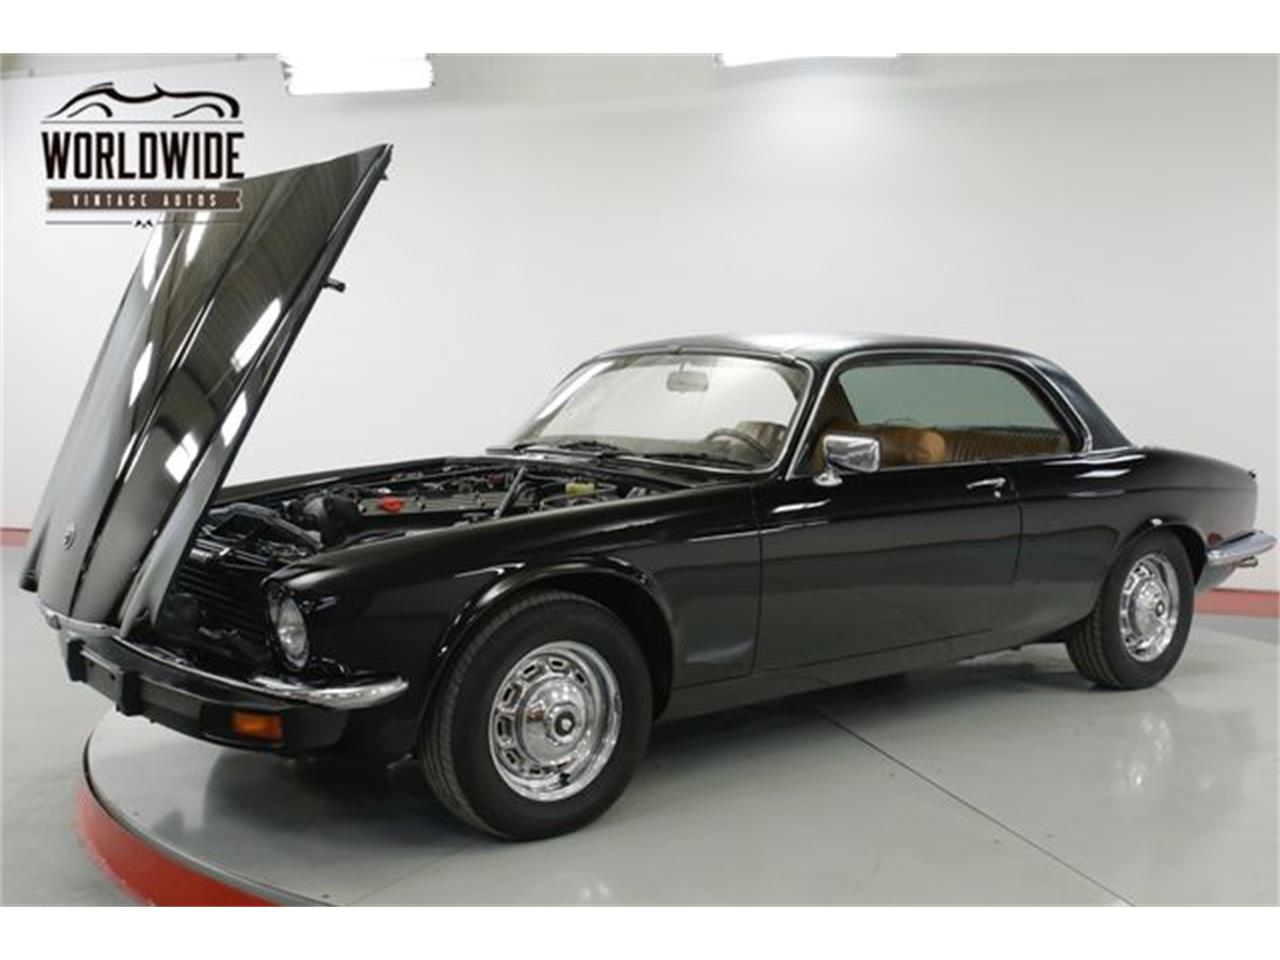 Large Picture of 1976 Jaguar XJ6 located in Colorado - $28,900.00 - PSG5